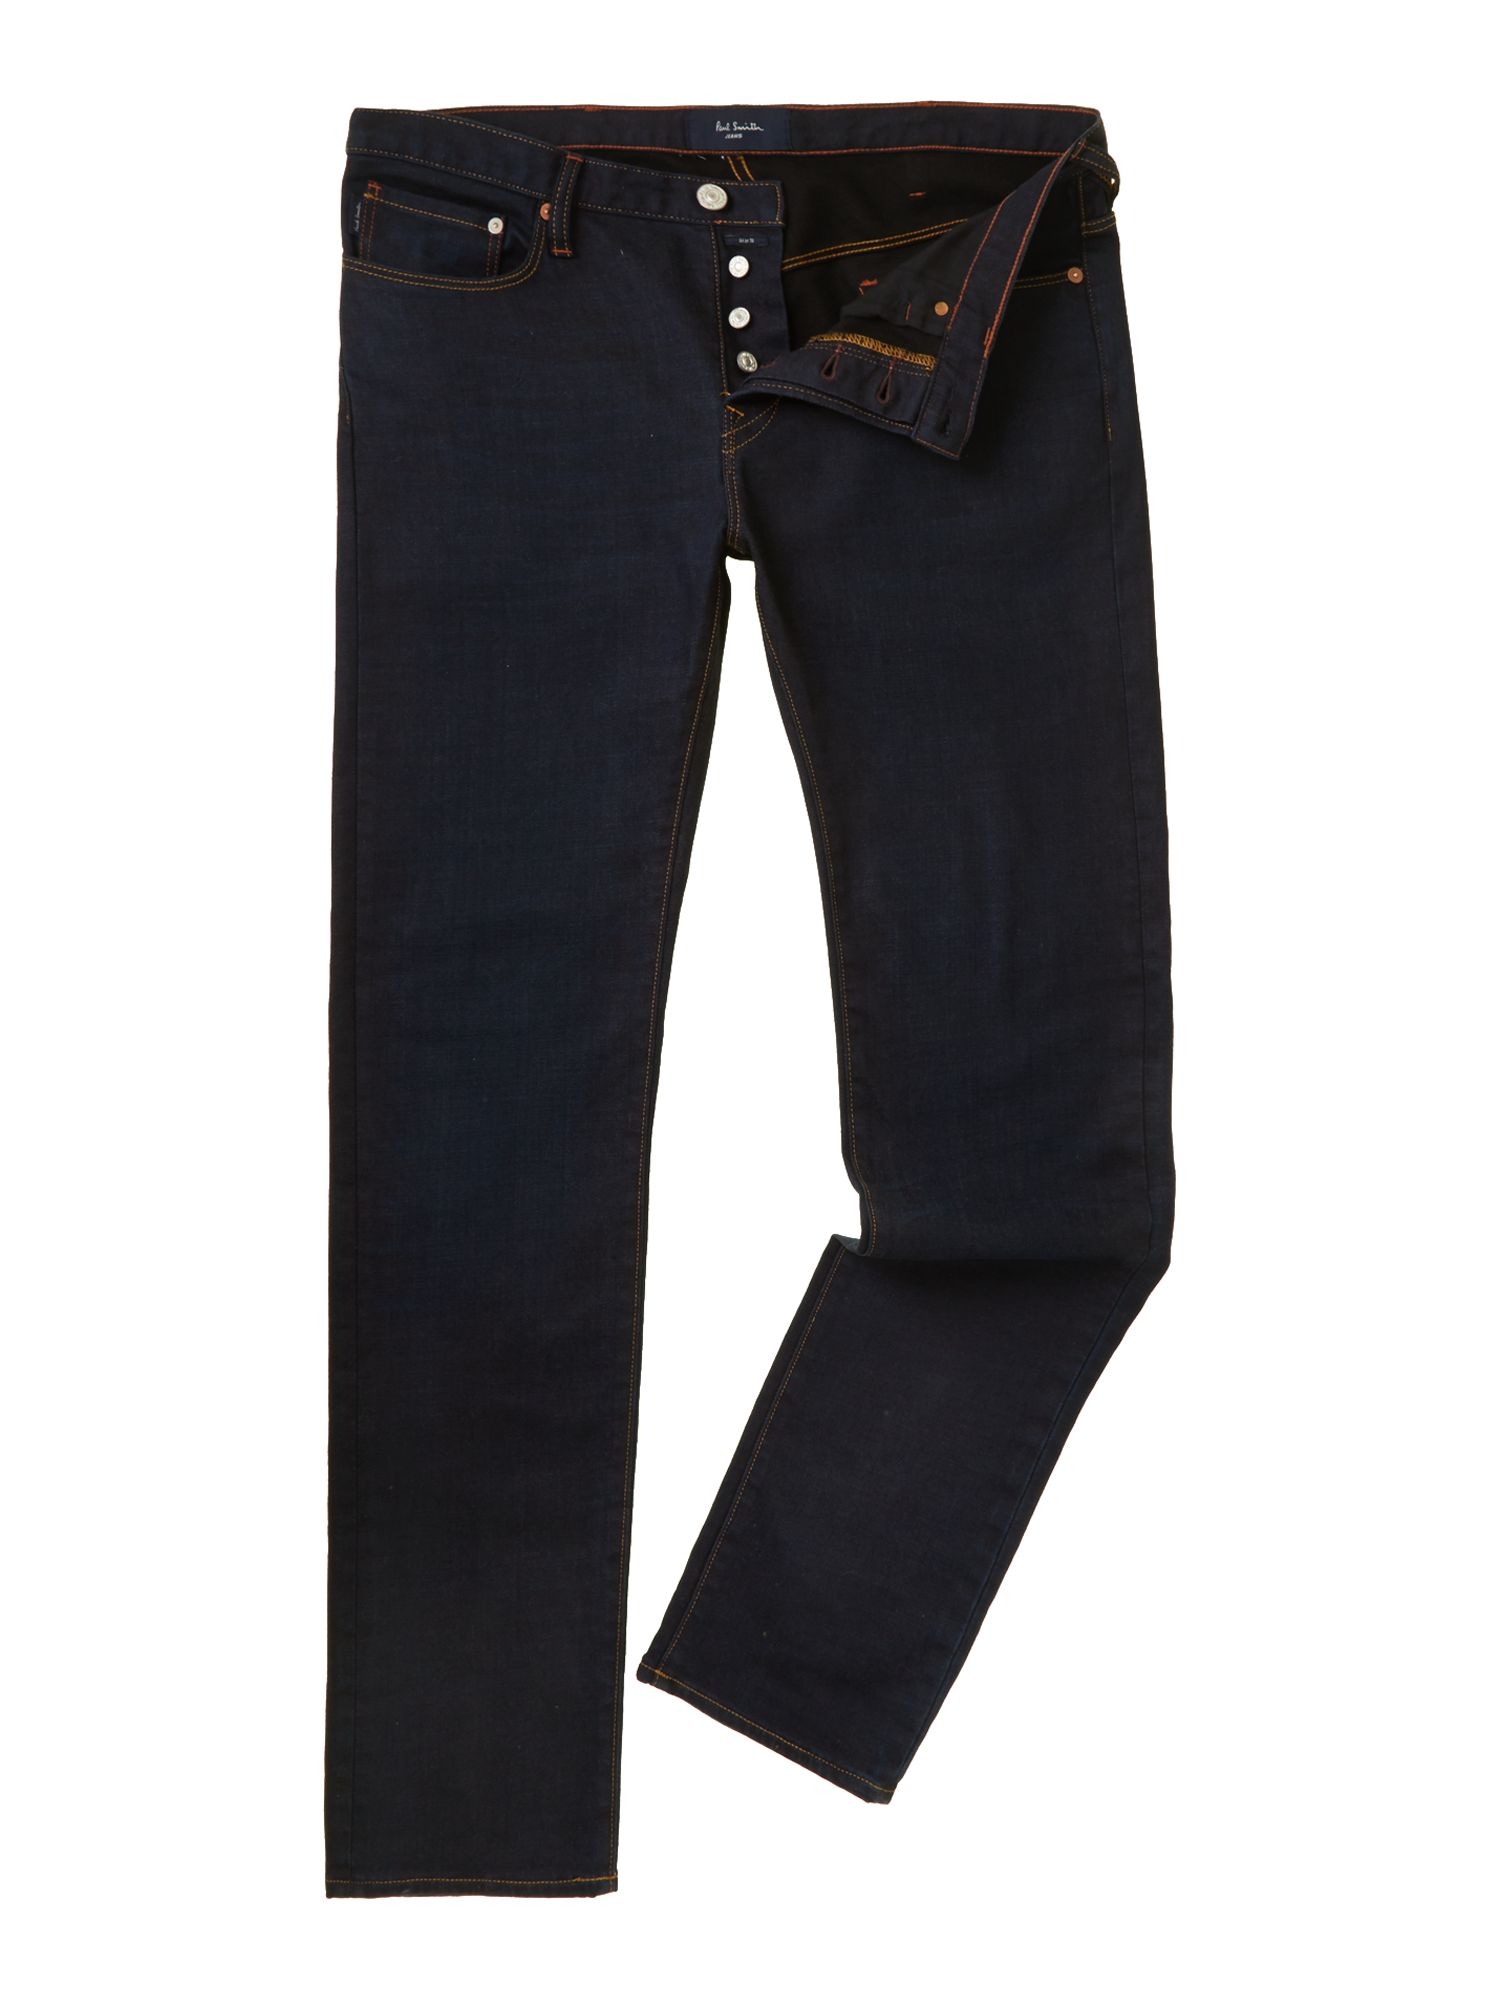 Slim stretch rinse wash jean